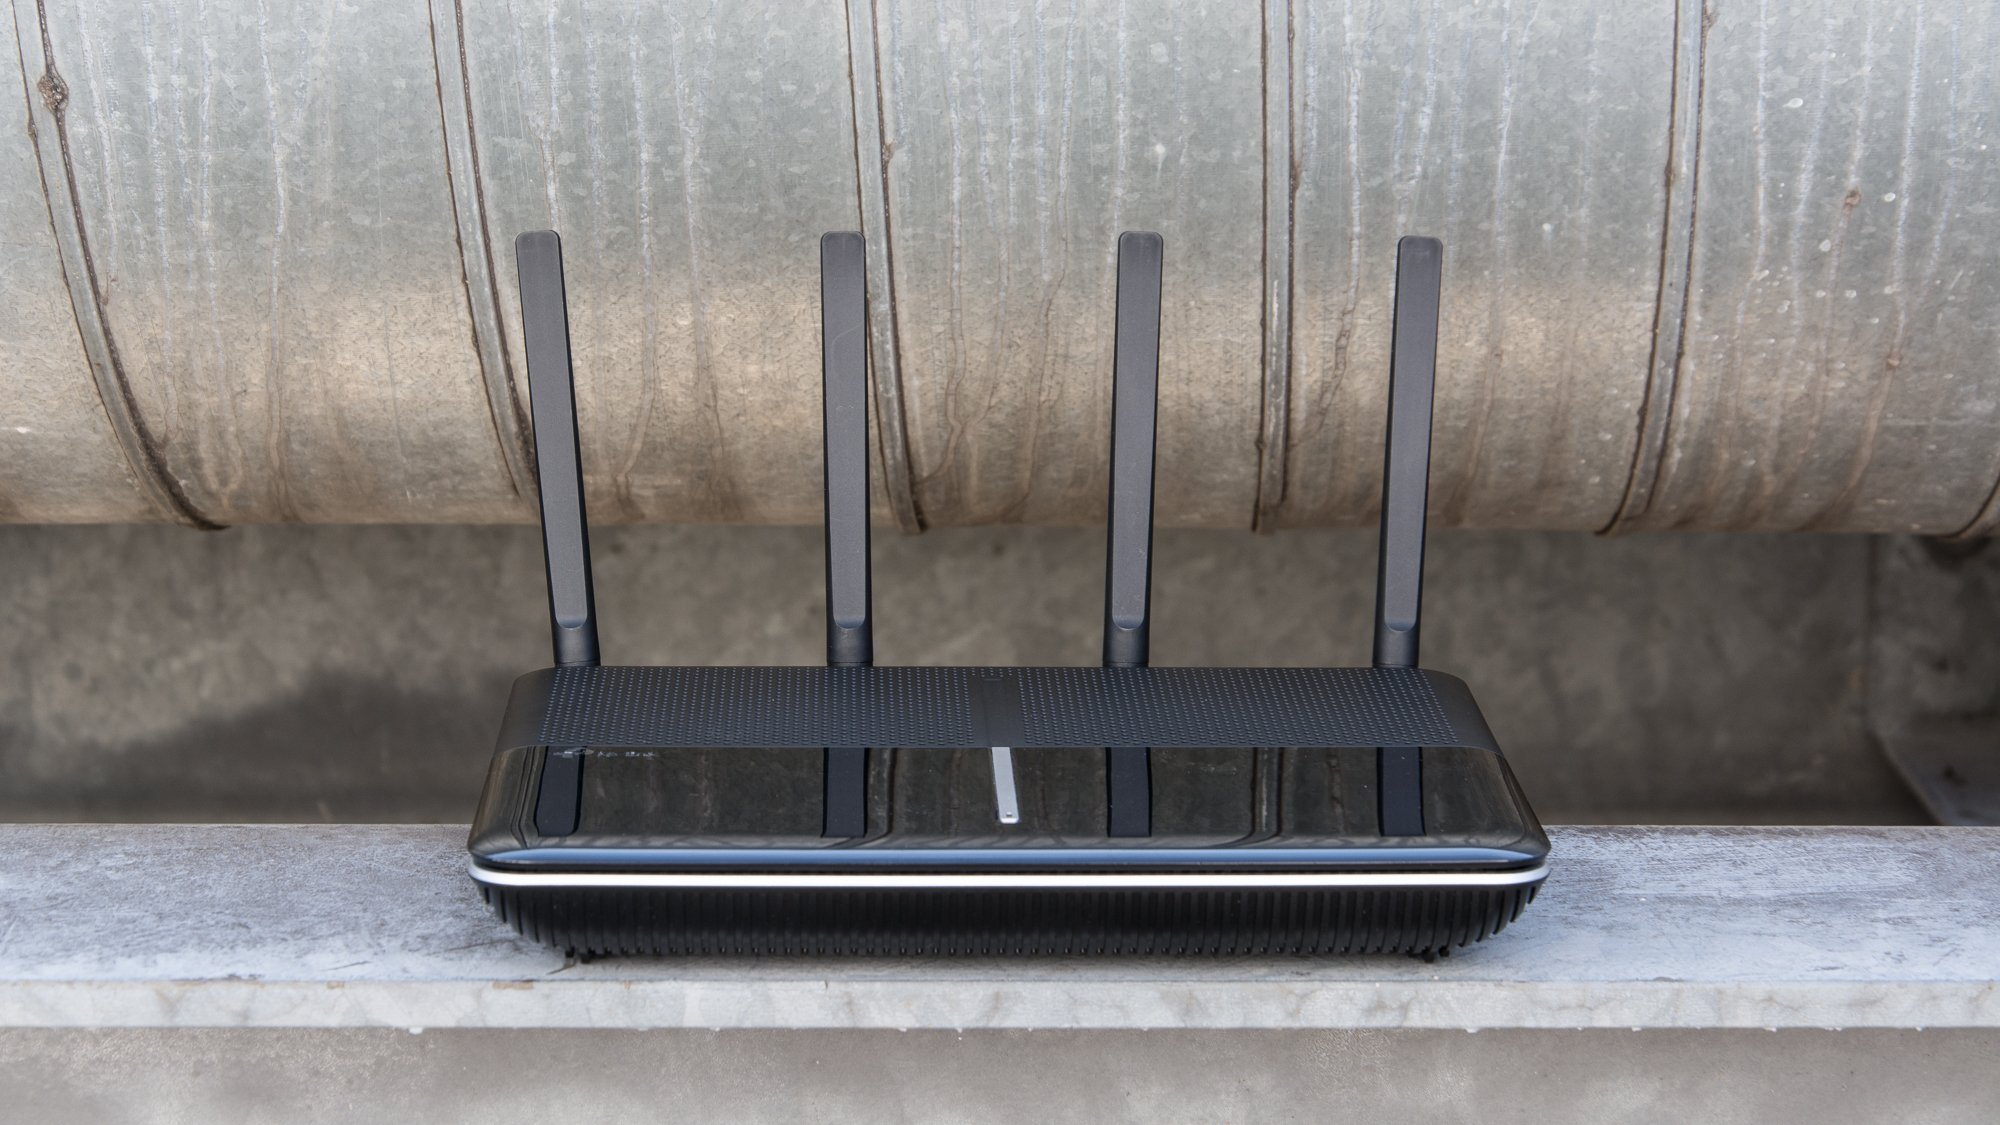 TP-Link Archer VR2800 review: Fast, furious Wi-Fi at a reasonable